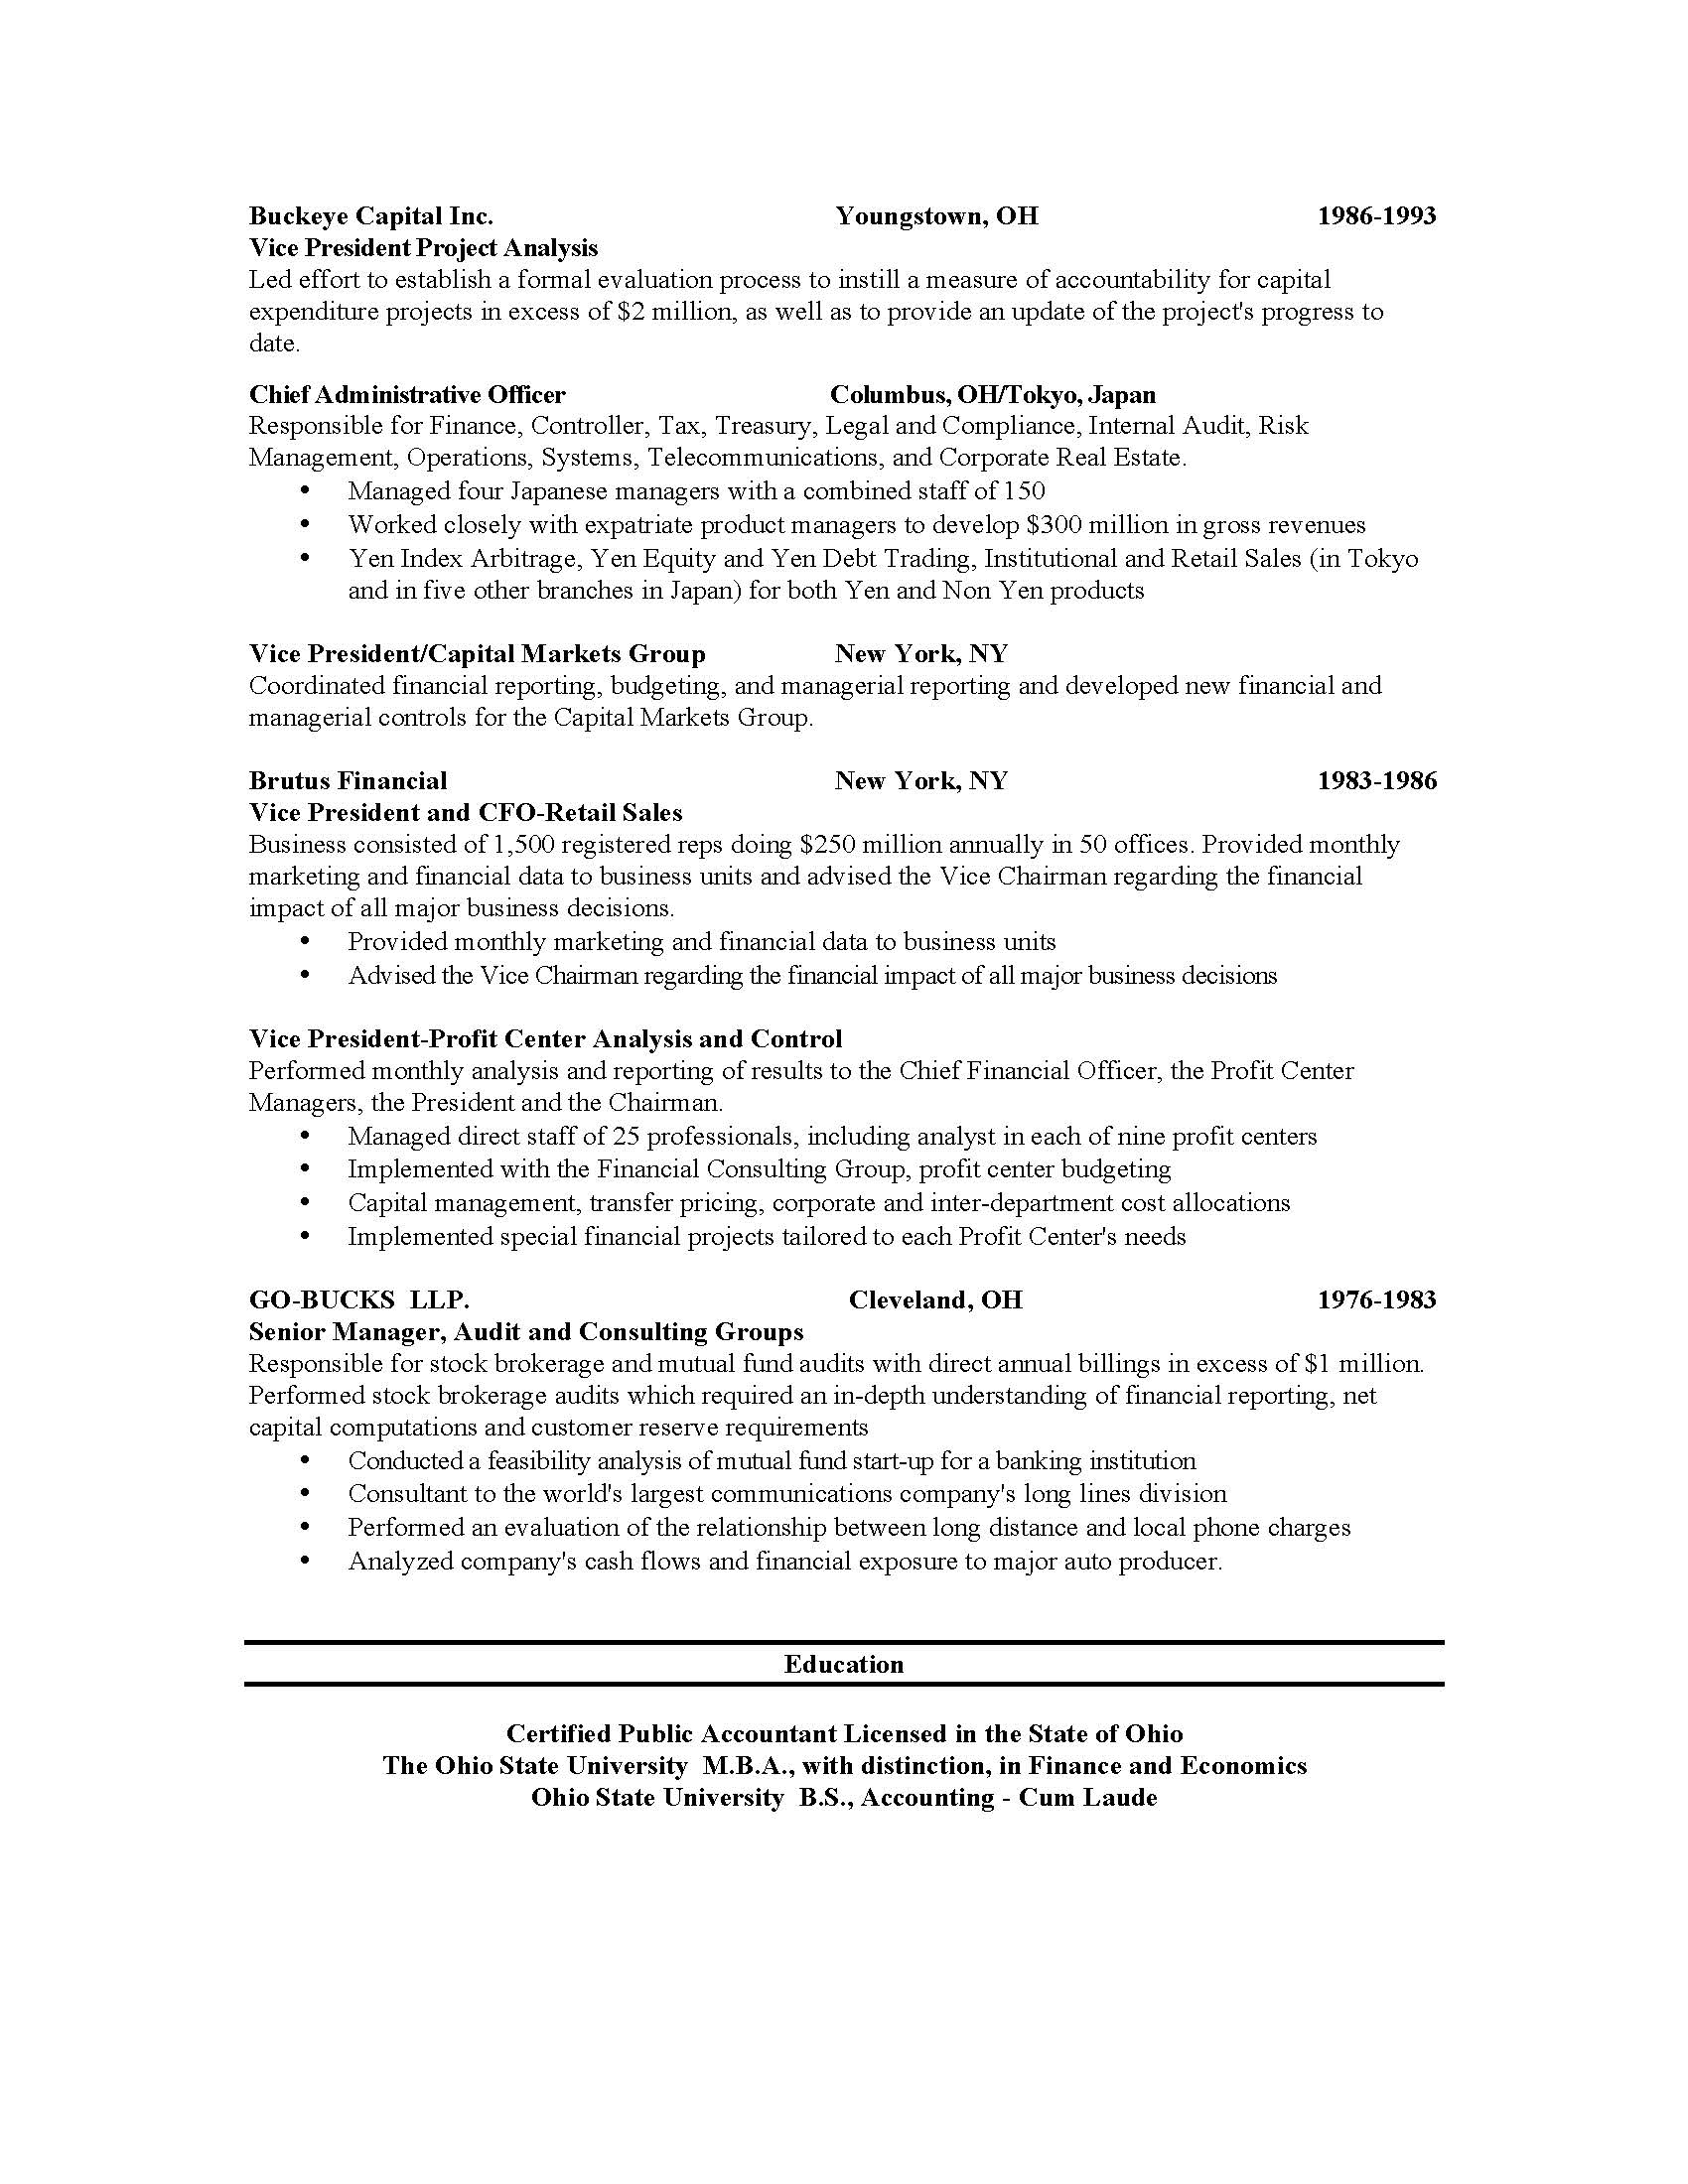 Resumes and cover letters The Ohio State University Alumni – Cover Letter for Resumes